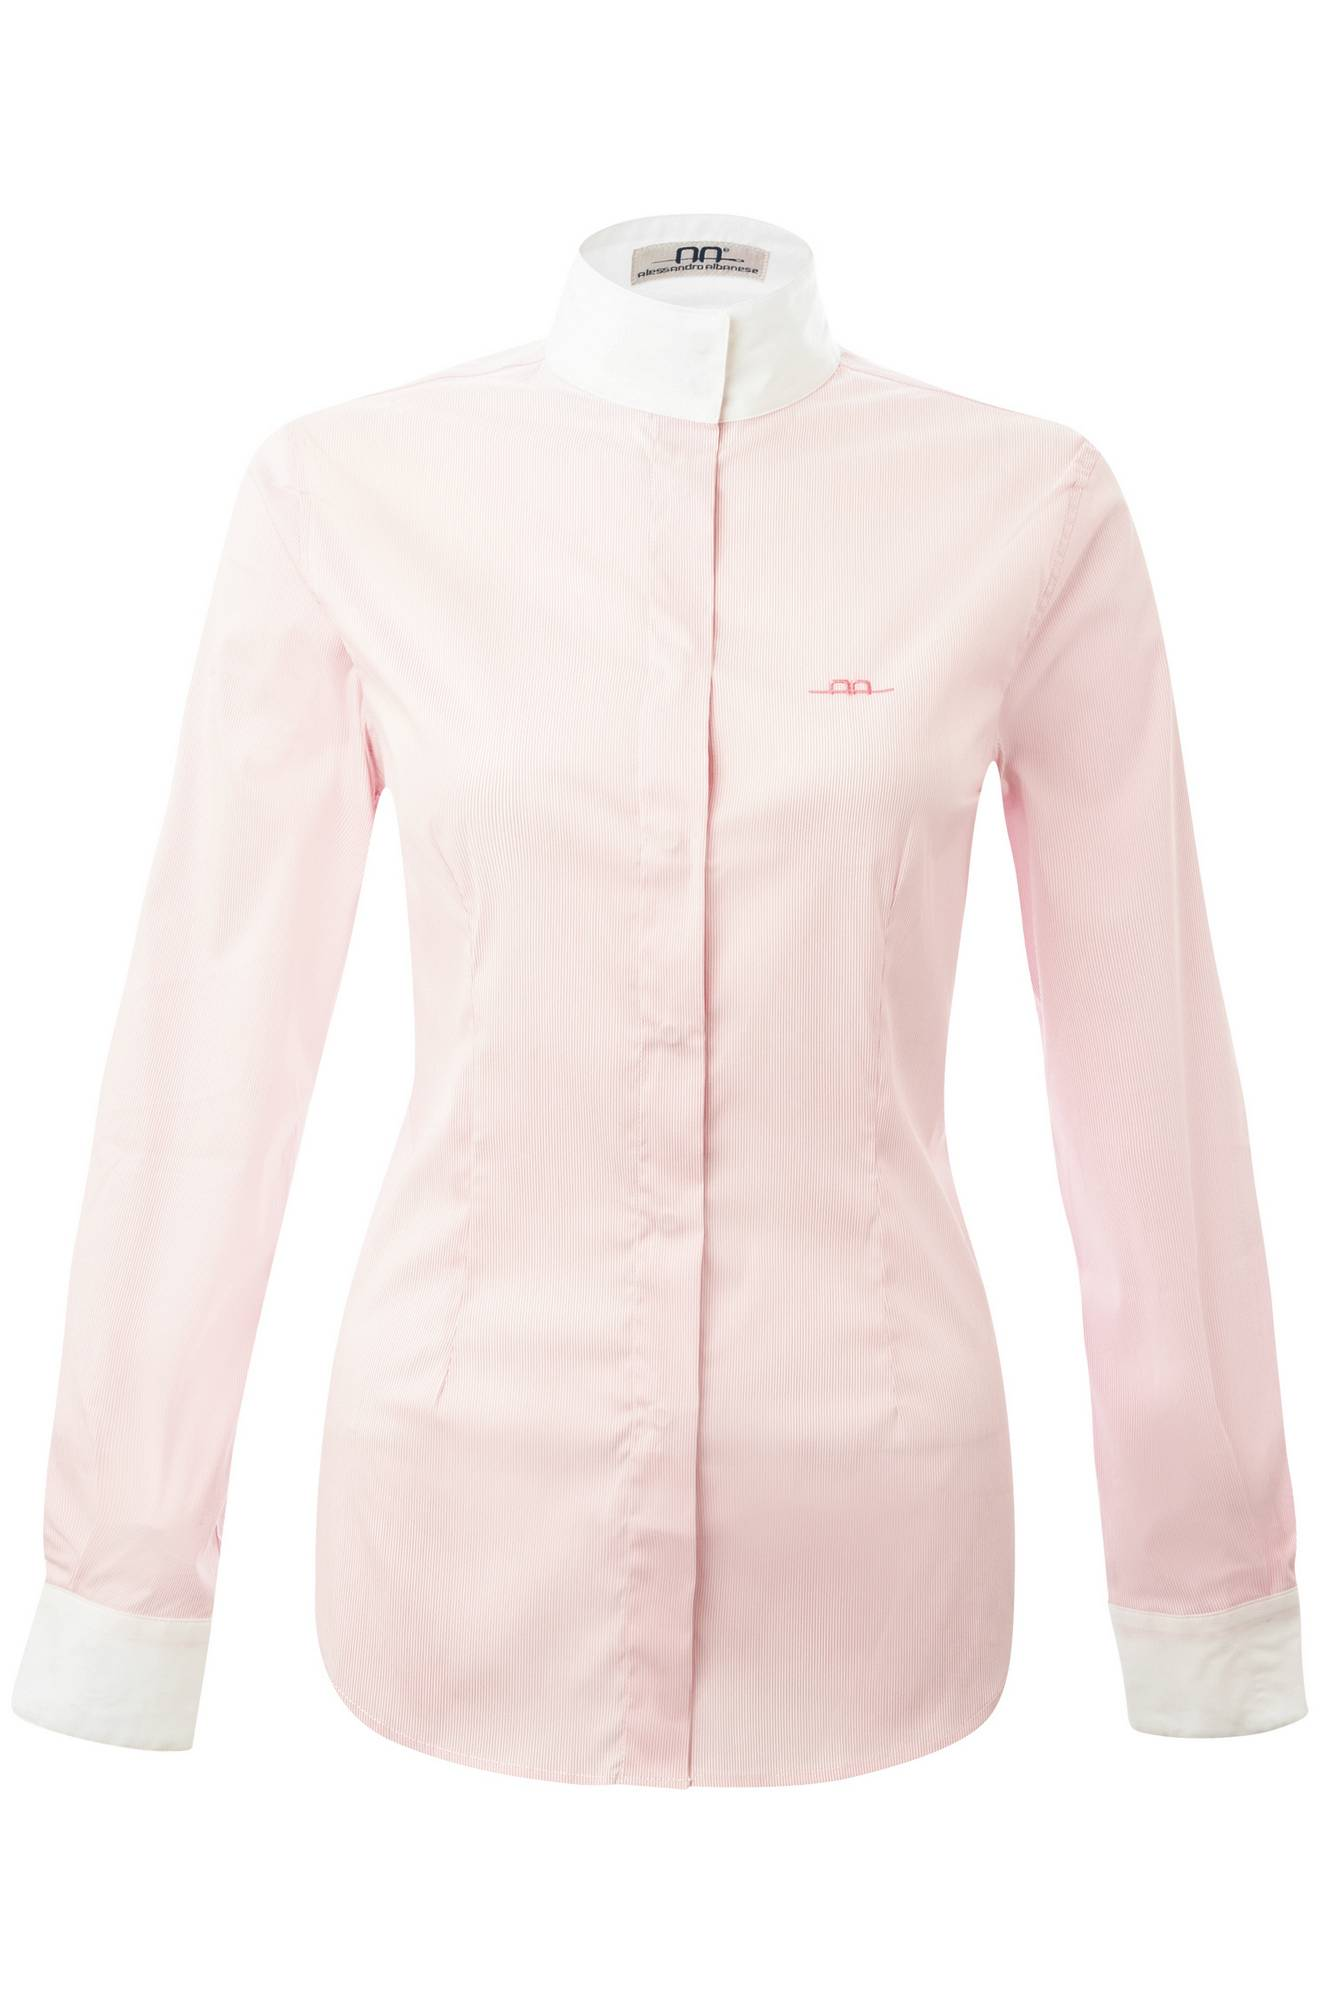 Alessandro Albanese 305 Ladies Shirt Long Sleeve